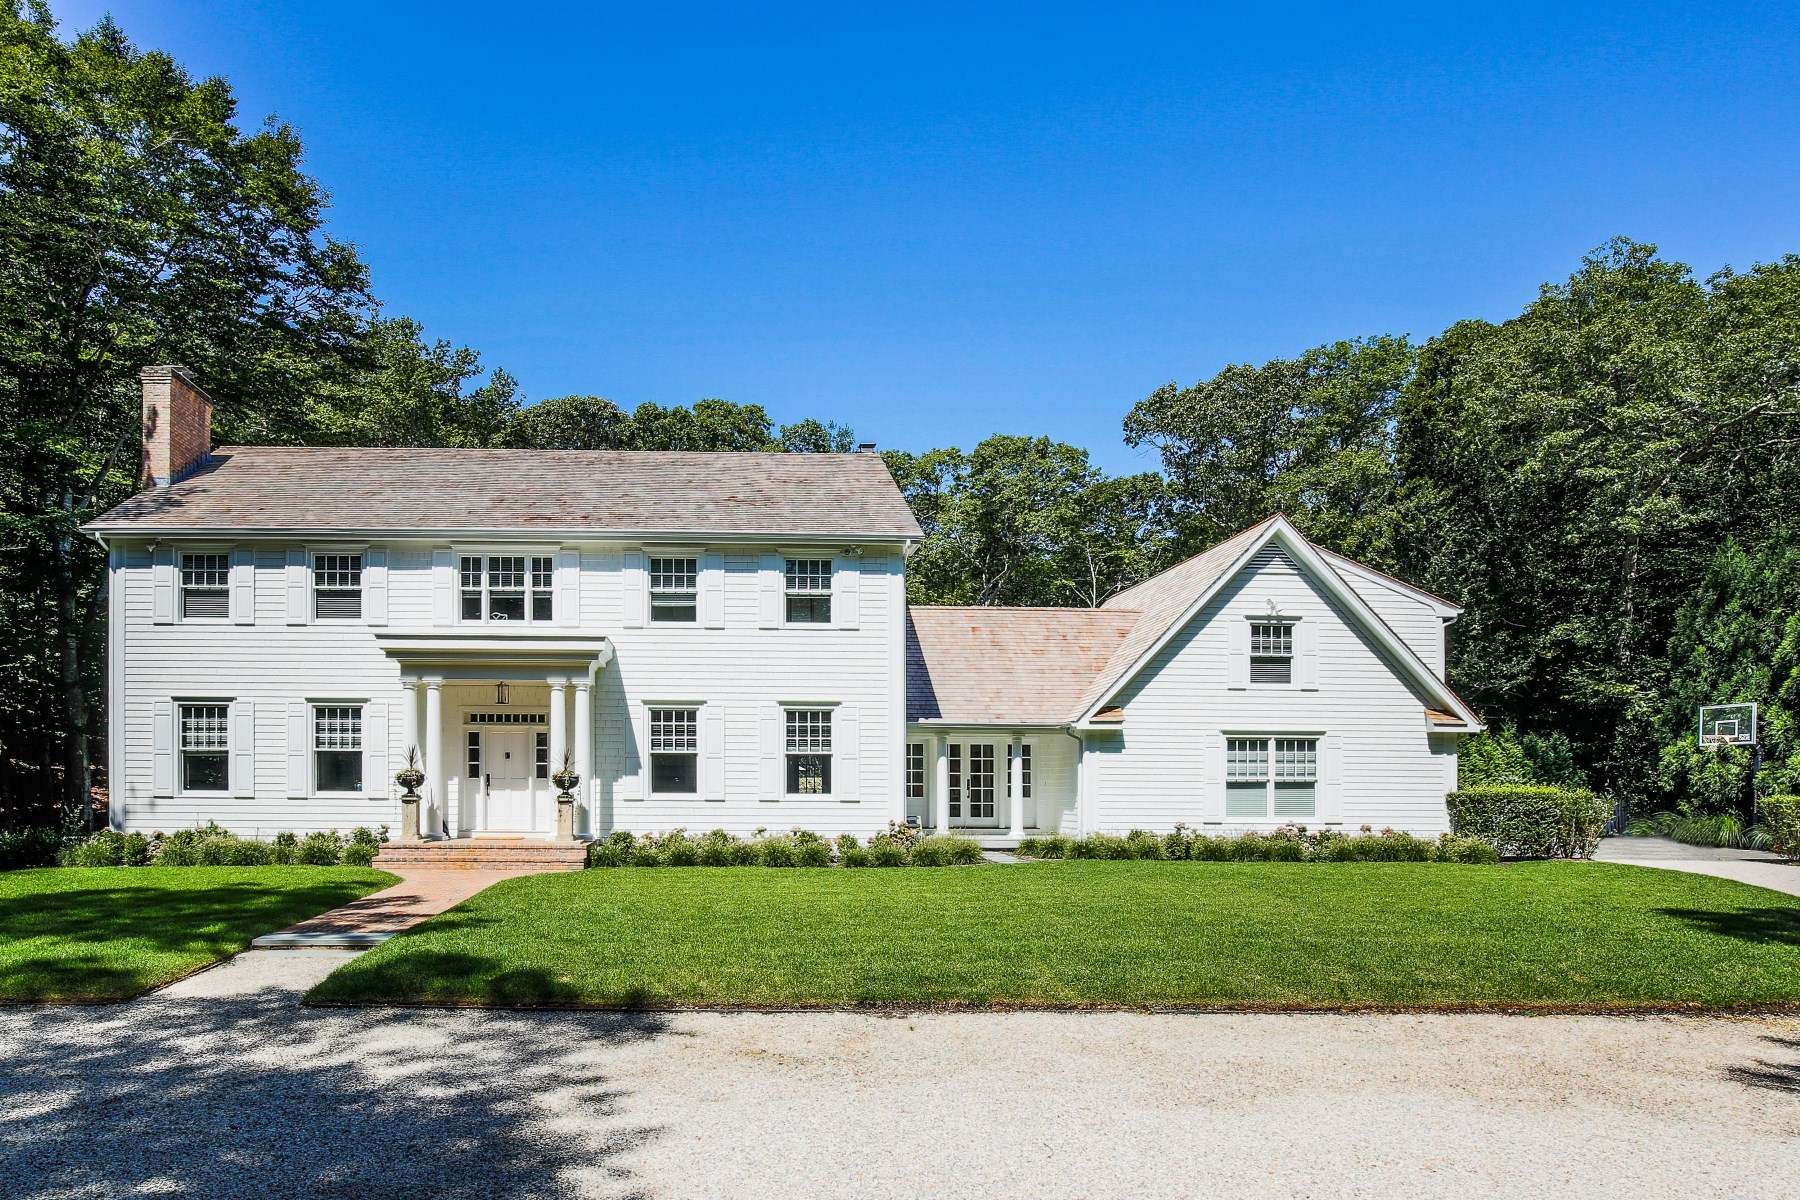 Single Family Home for Sale at Amagansett Summers 17 Woodedge Circle Amagansett, New York, 11930 United States